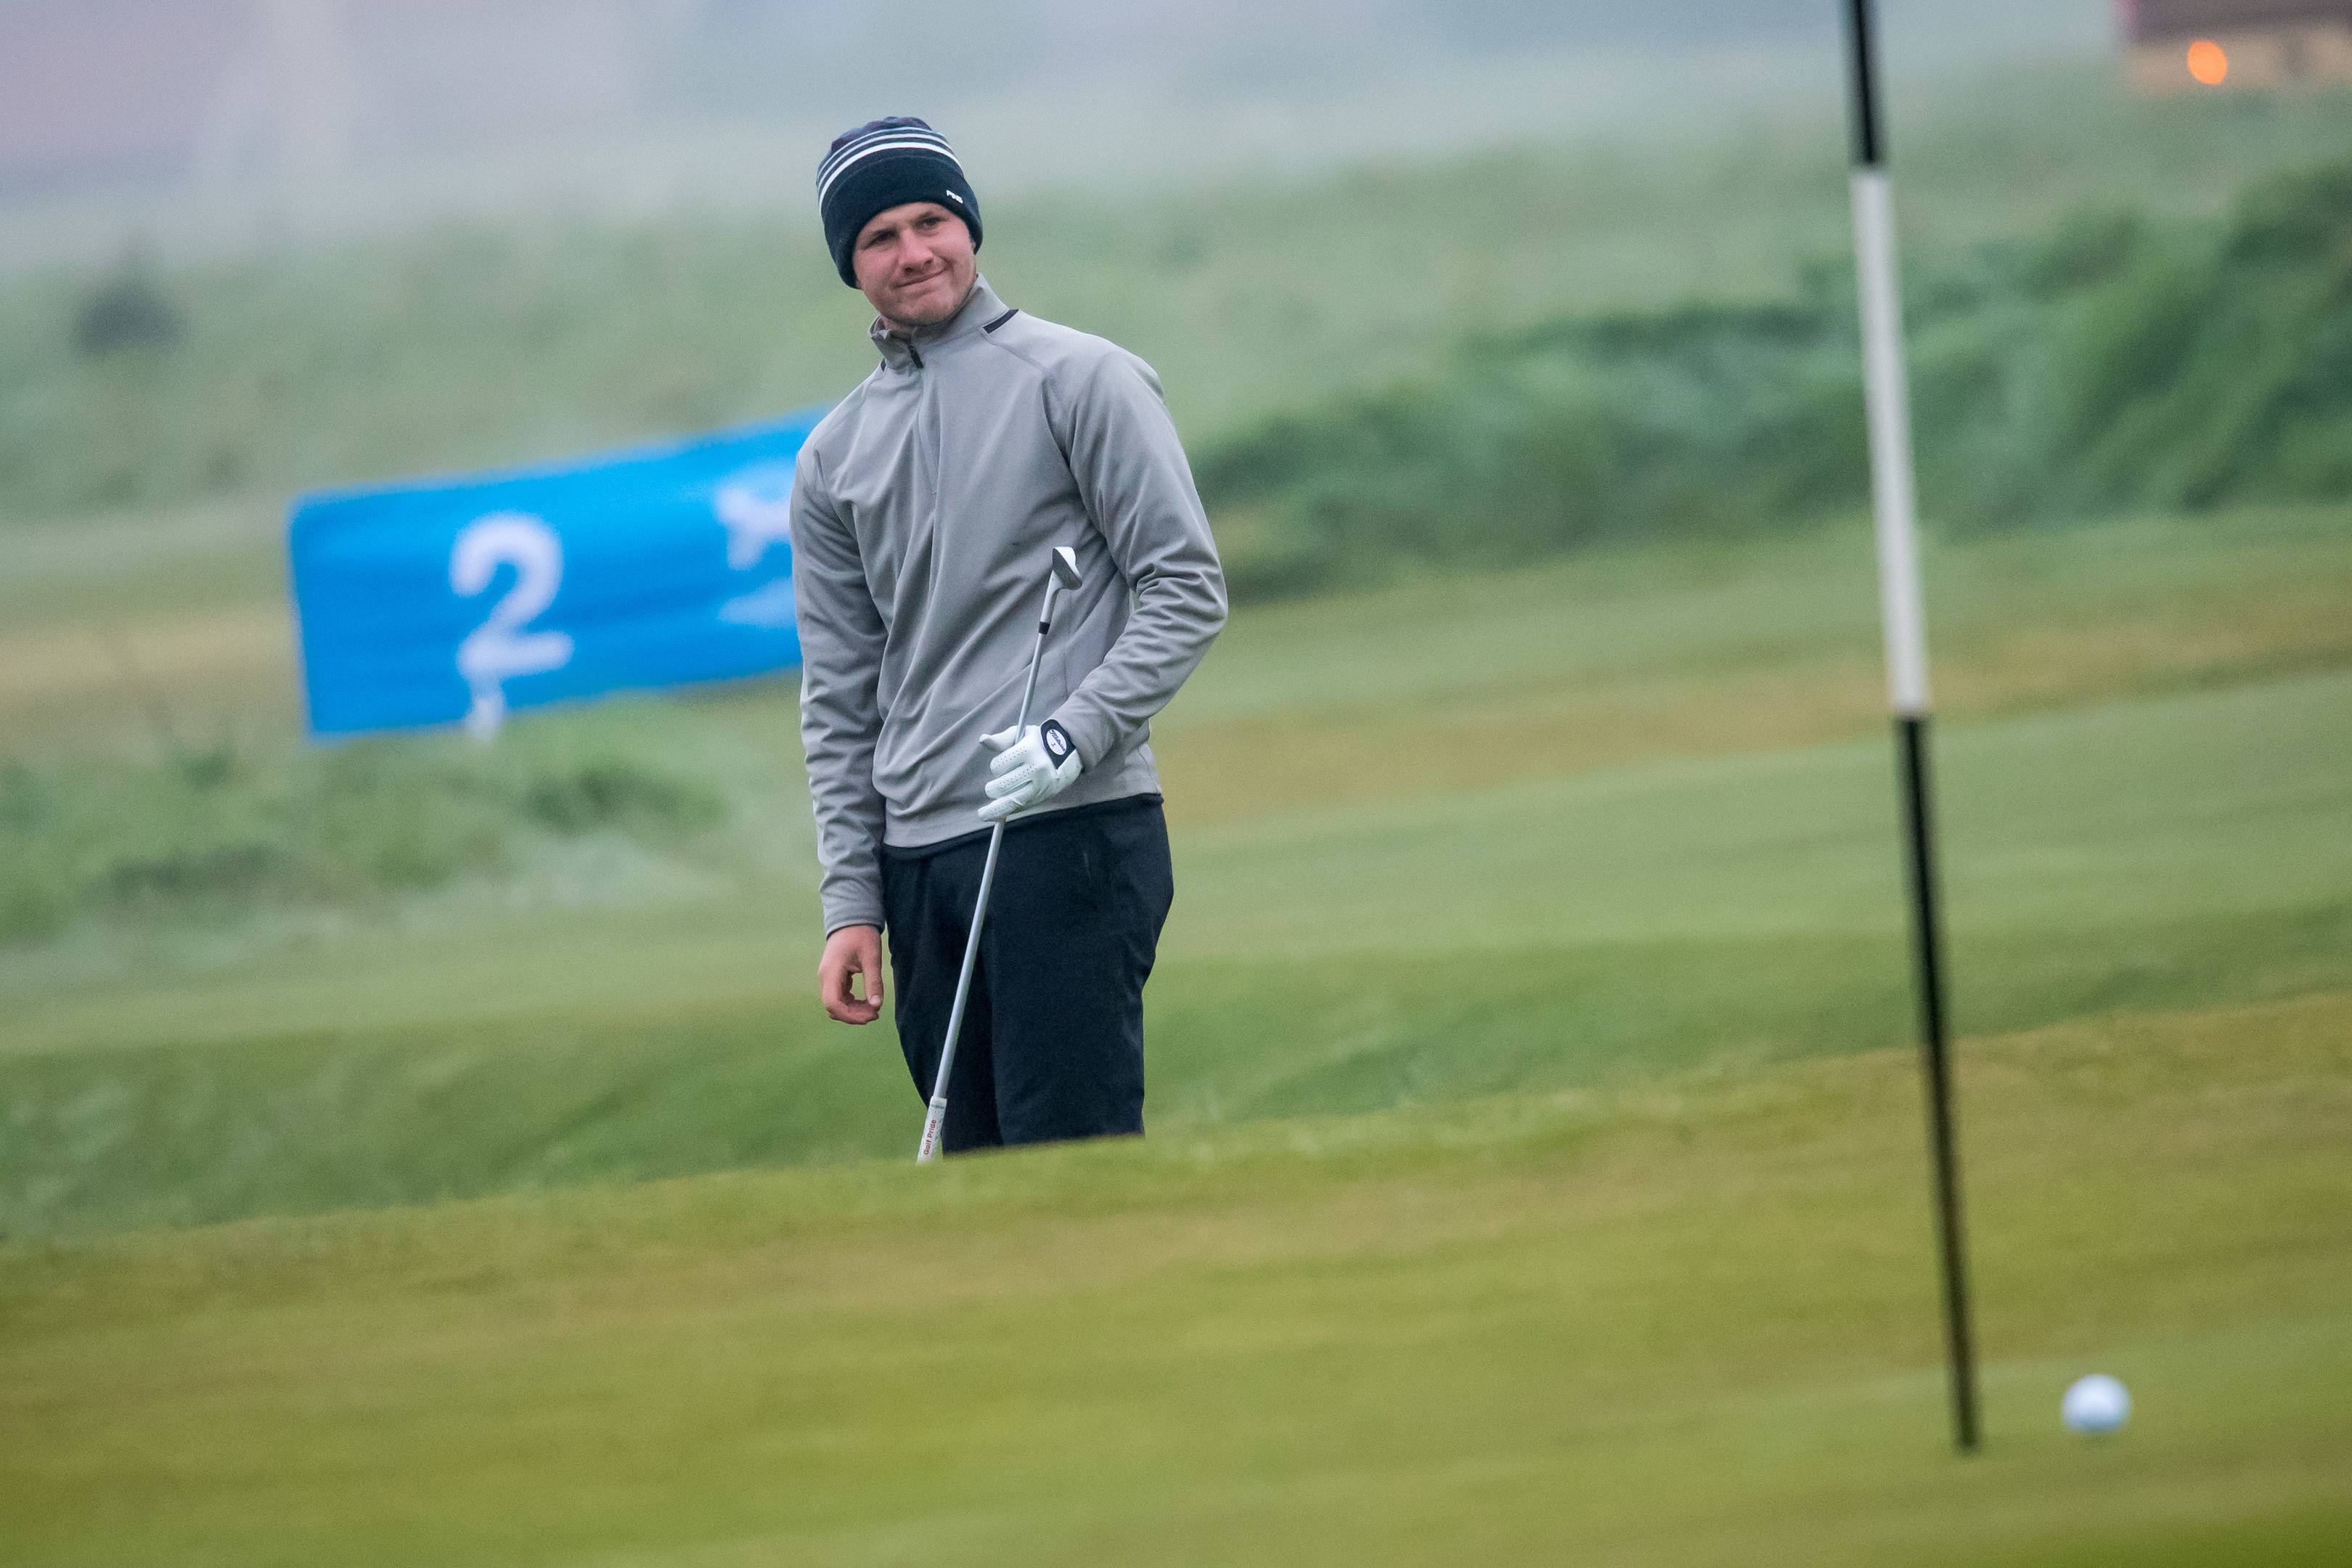 Drumoig's Connor Syme will make his Open debut at Royal Birkdale later this month.